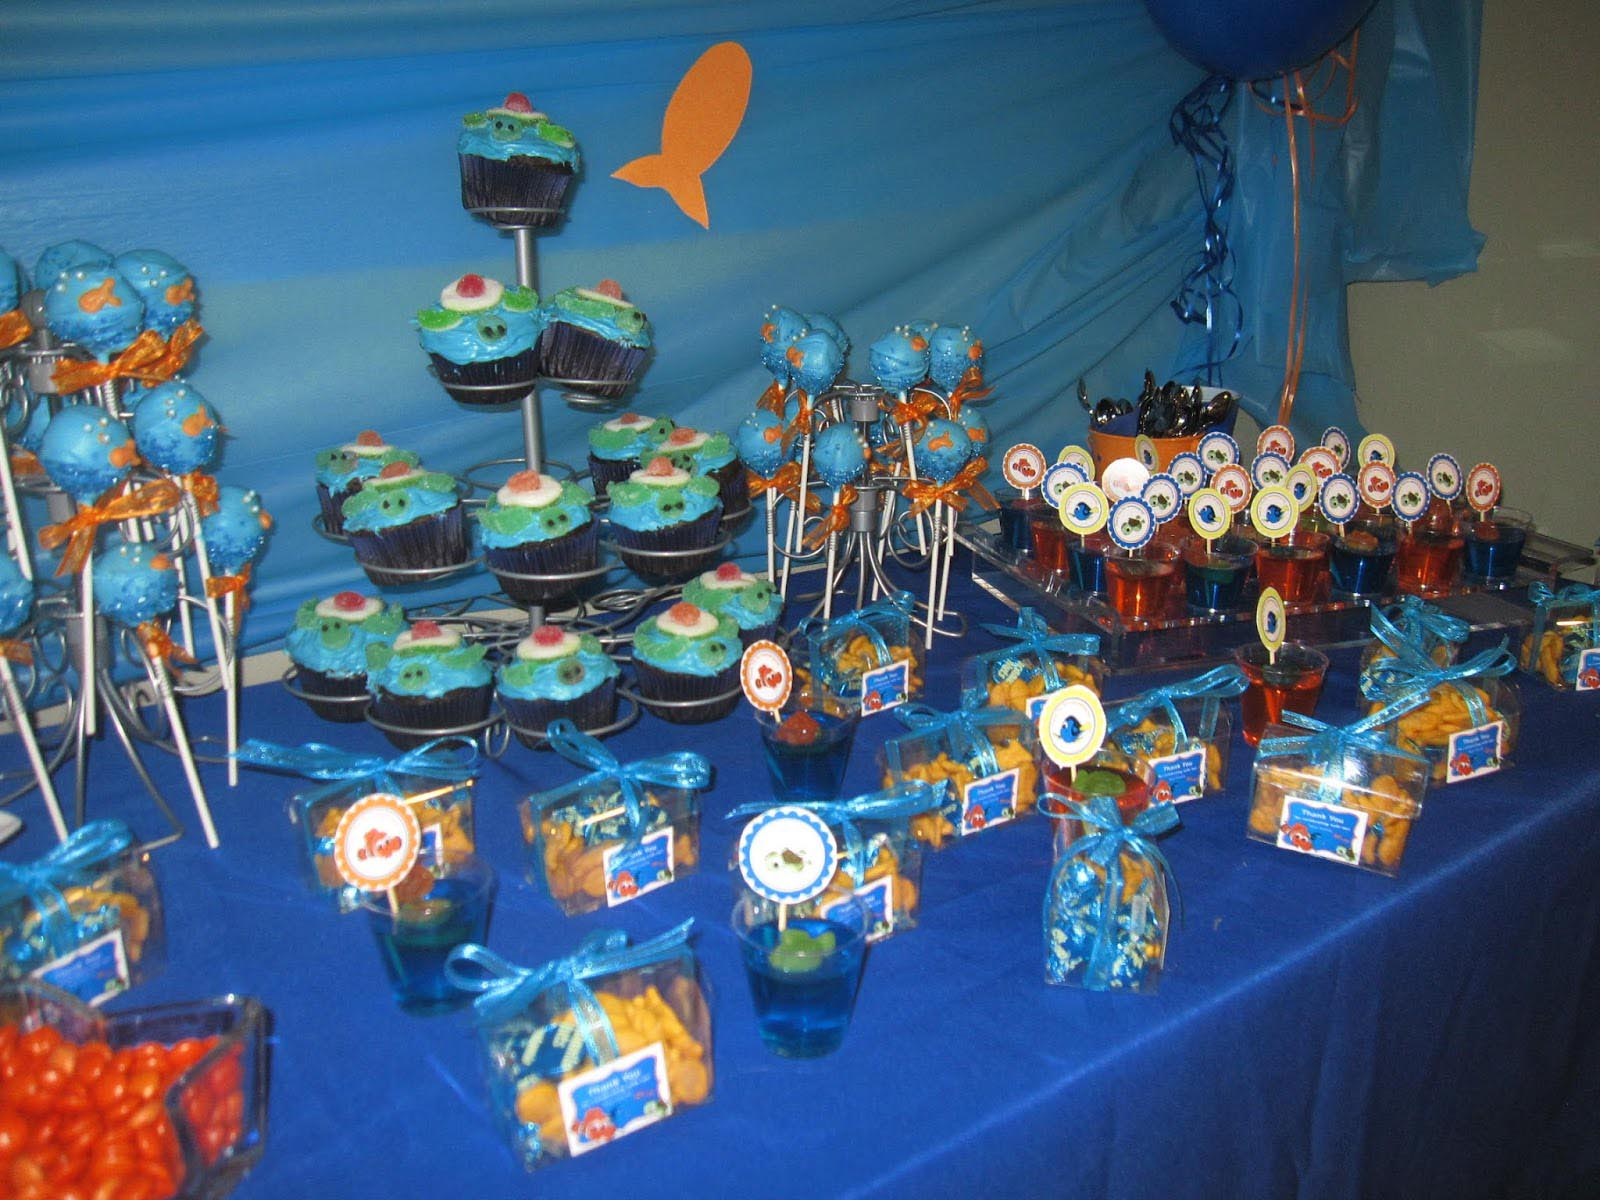 Finding Nemo Birthday Party Supply | Home Party Ideas